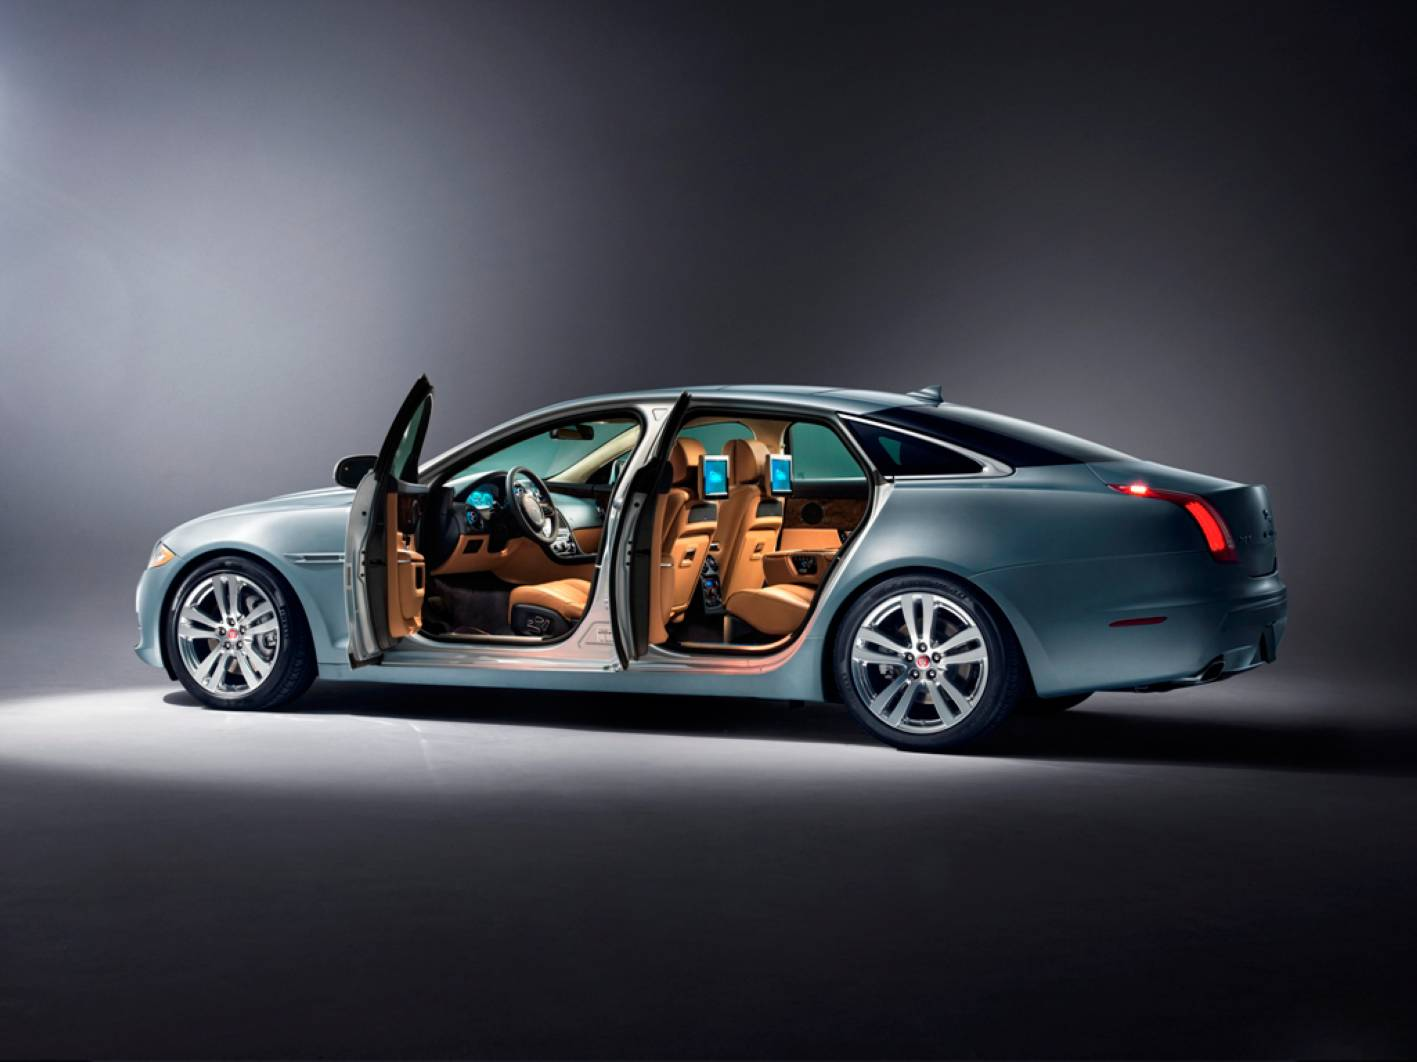 Jaguar Cars News Jaguar Cars News 2014 Xj Pricing And Specifications